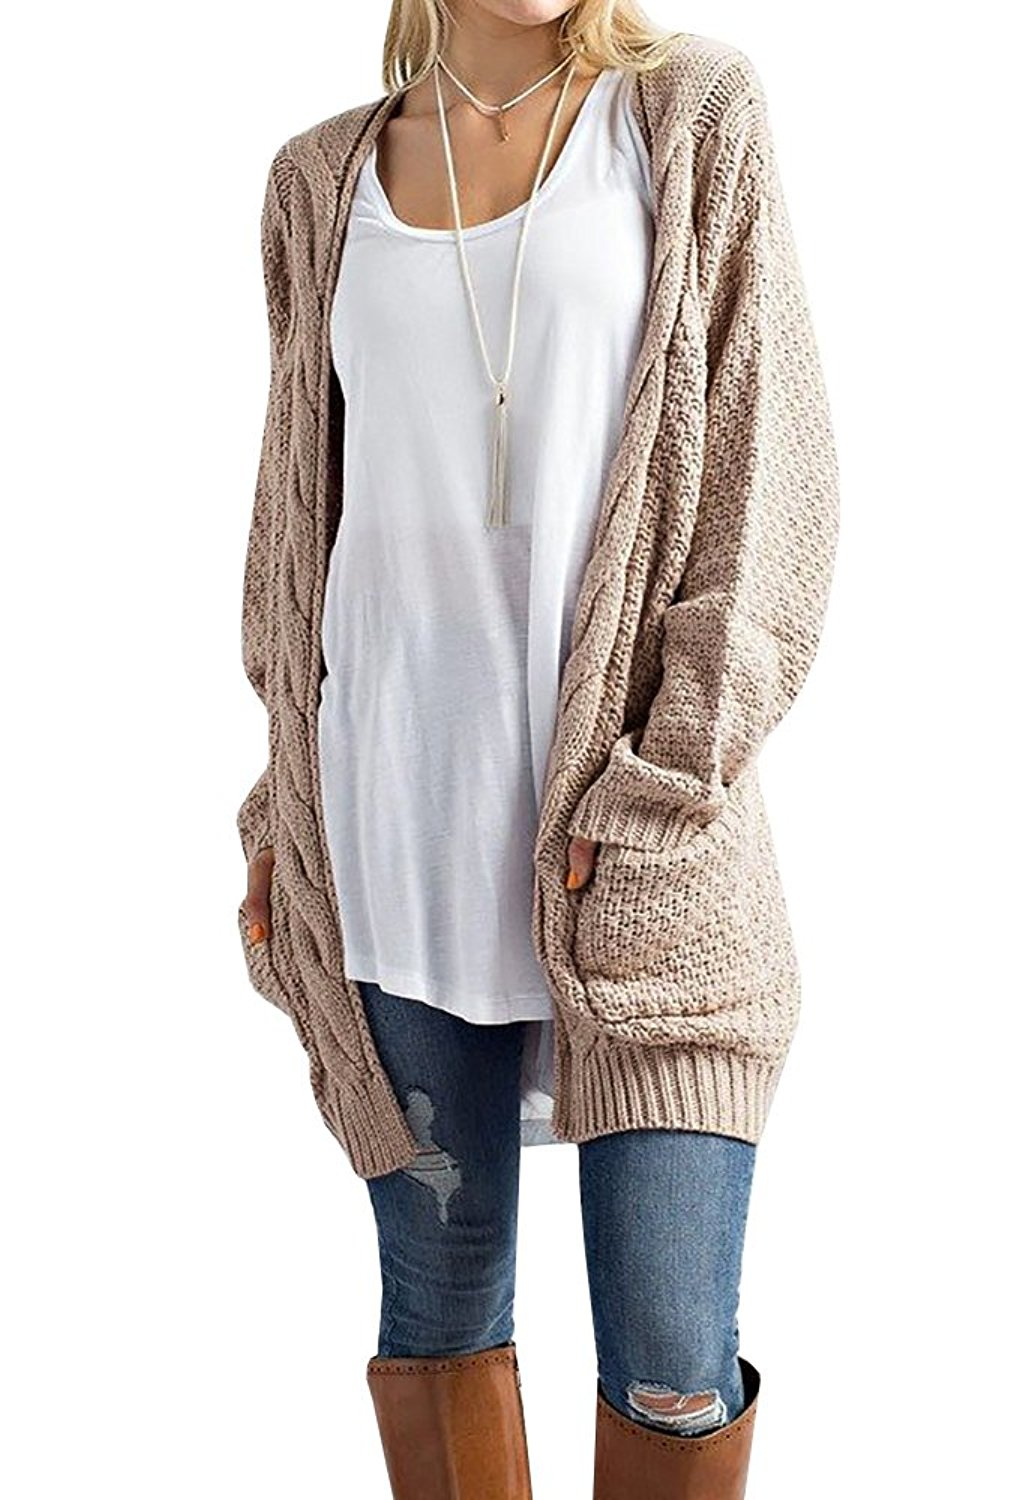 17354148f03 Get Quotations · Imily Bela Women s Boho Long Sleeve Open Front Chunky Warm Cardigans  Pointelle Pullover Sweater Blouses